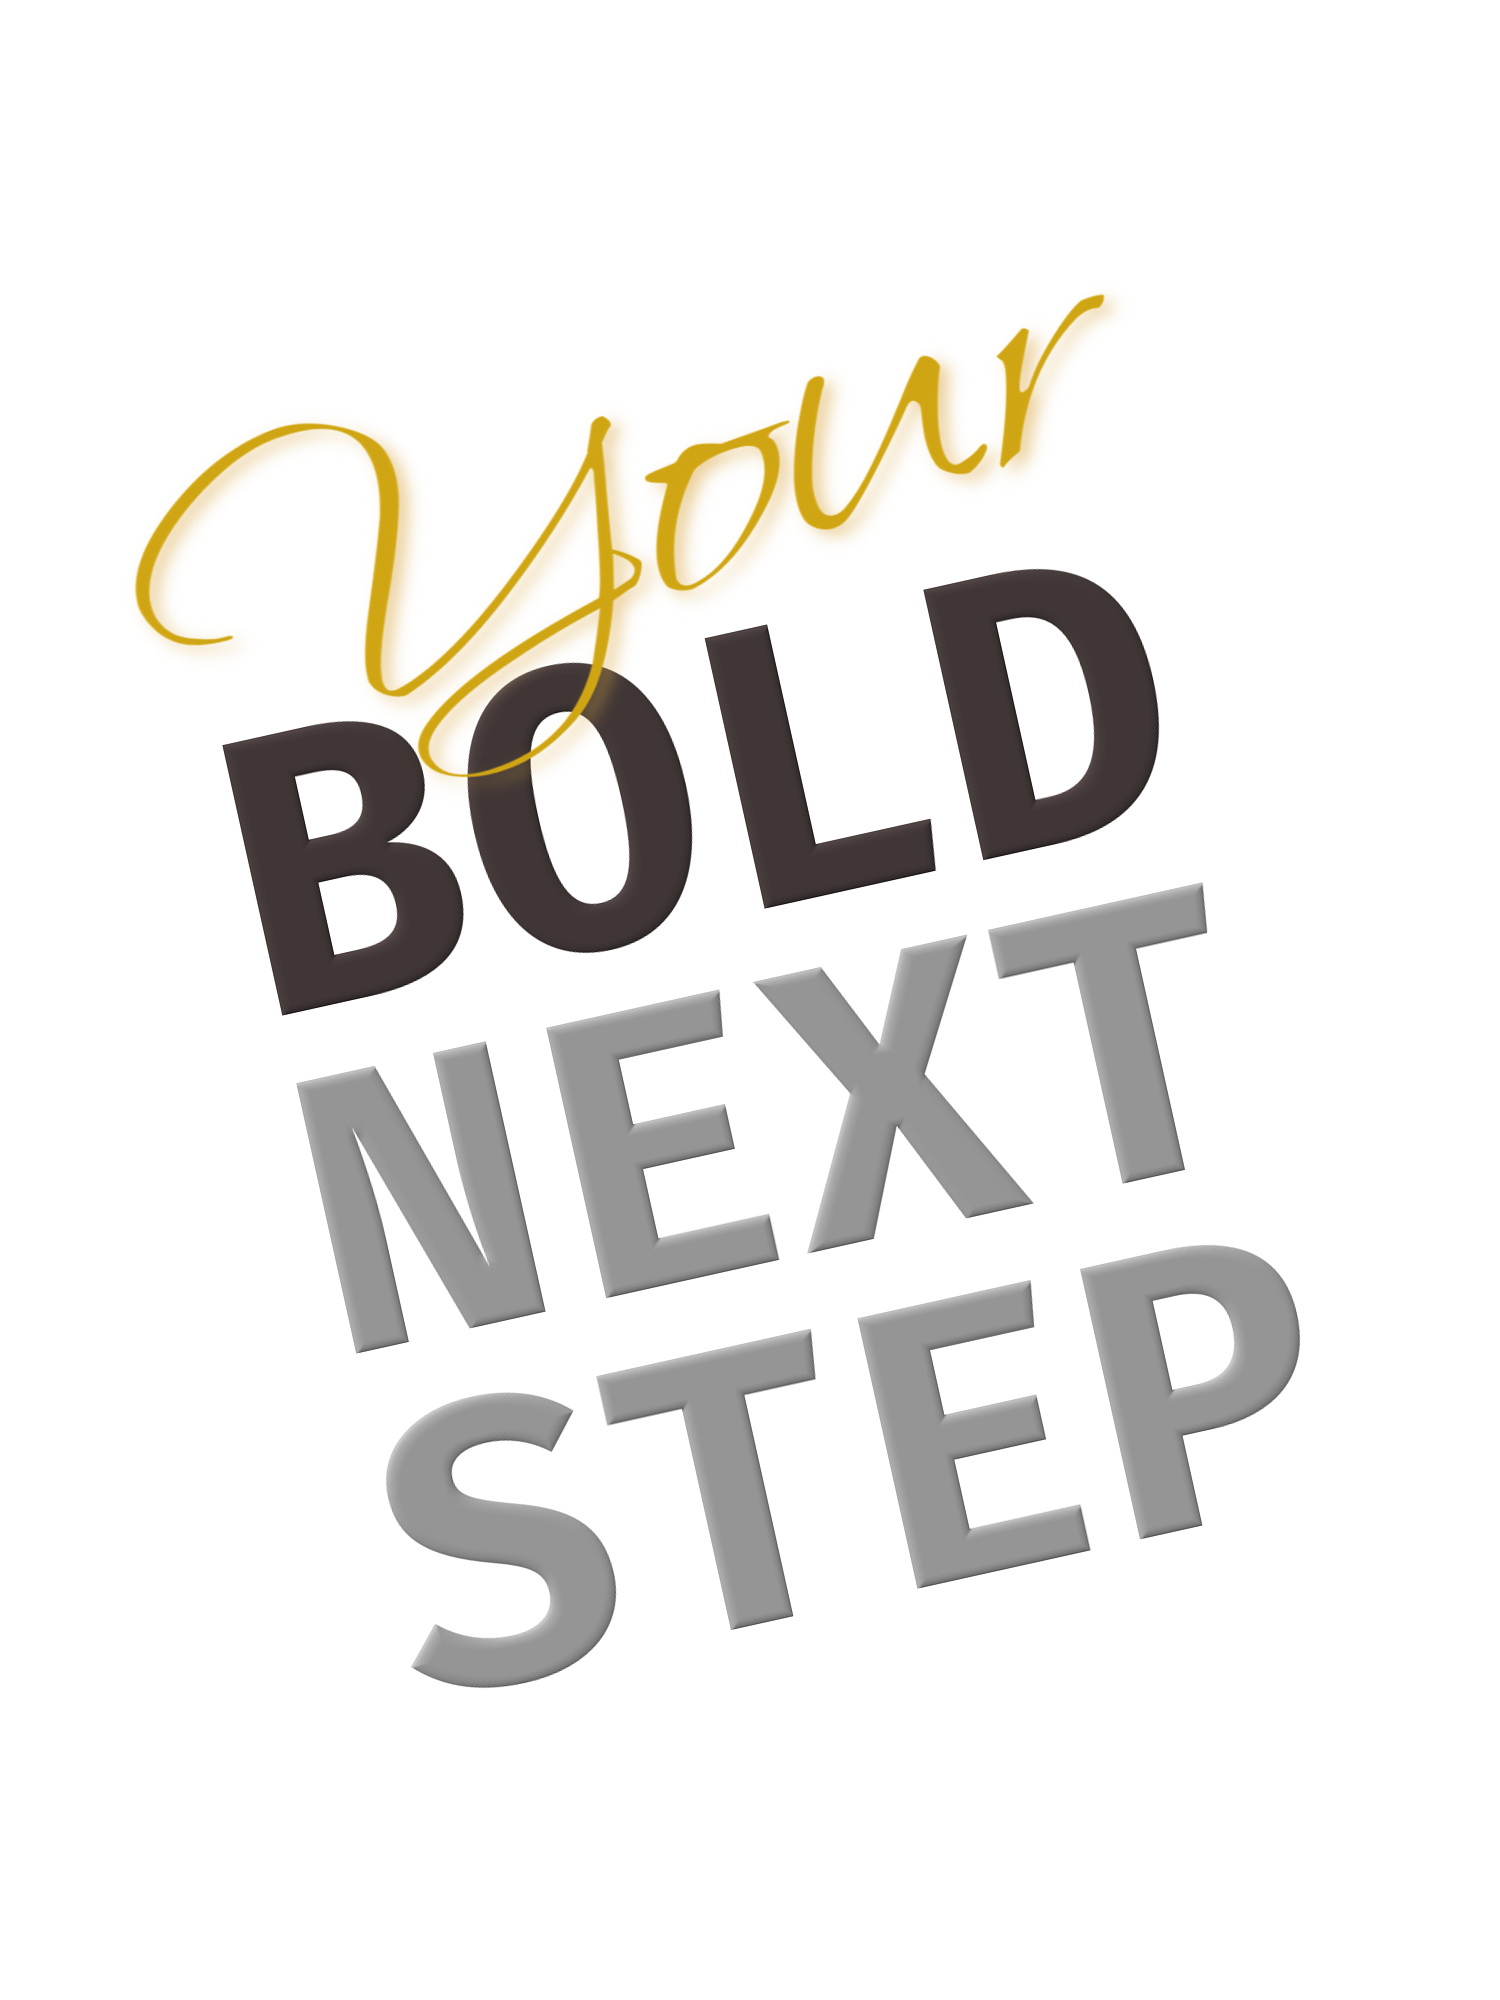 Your Bold Next Step